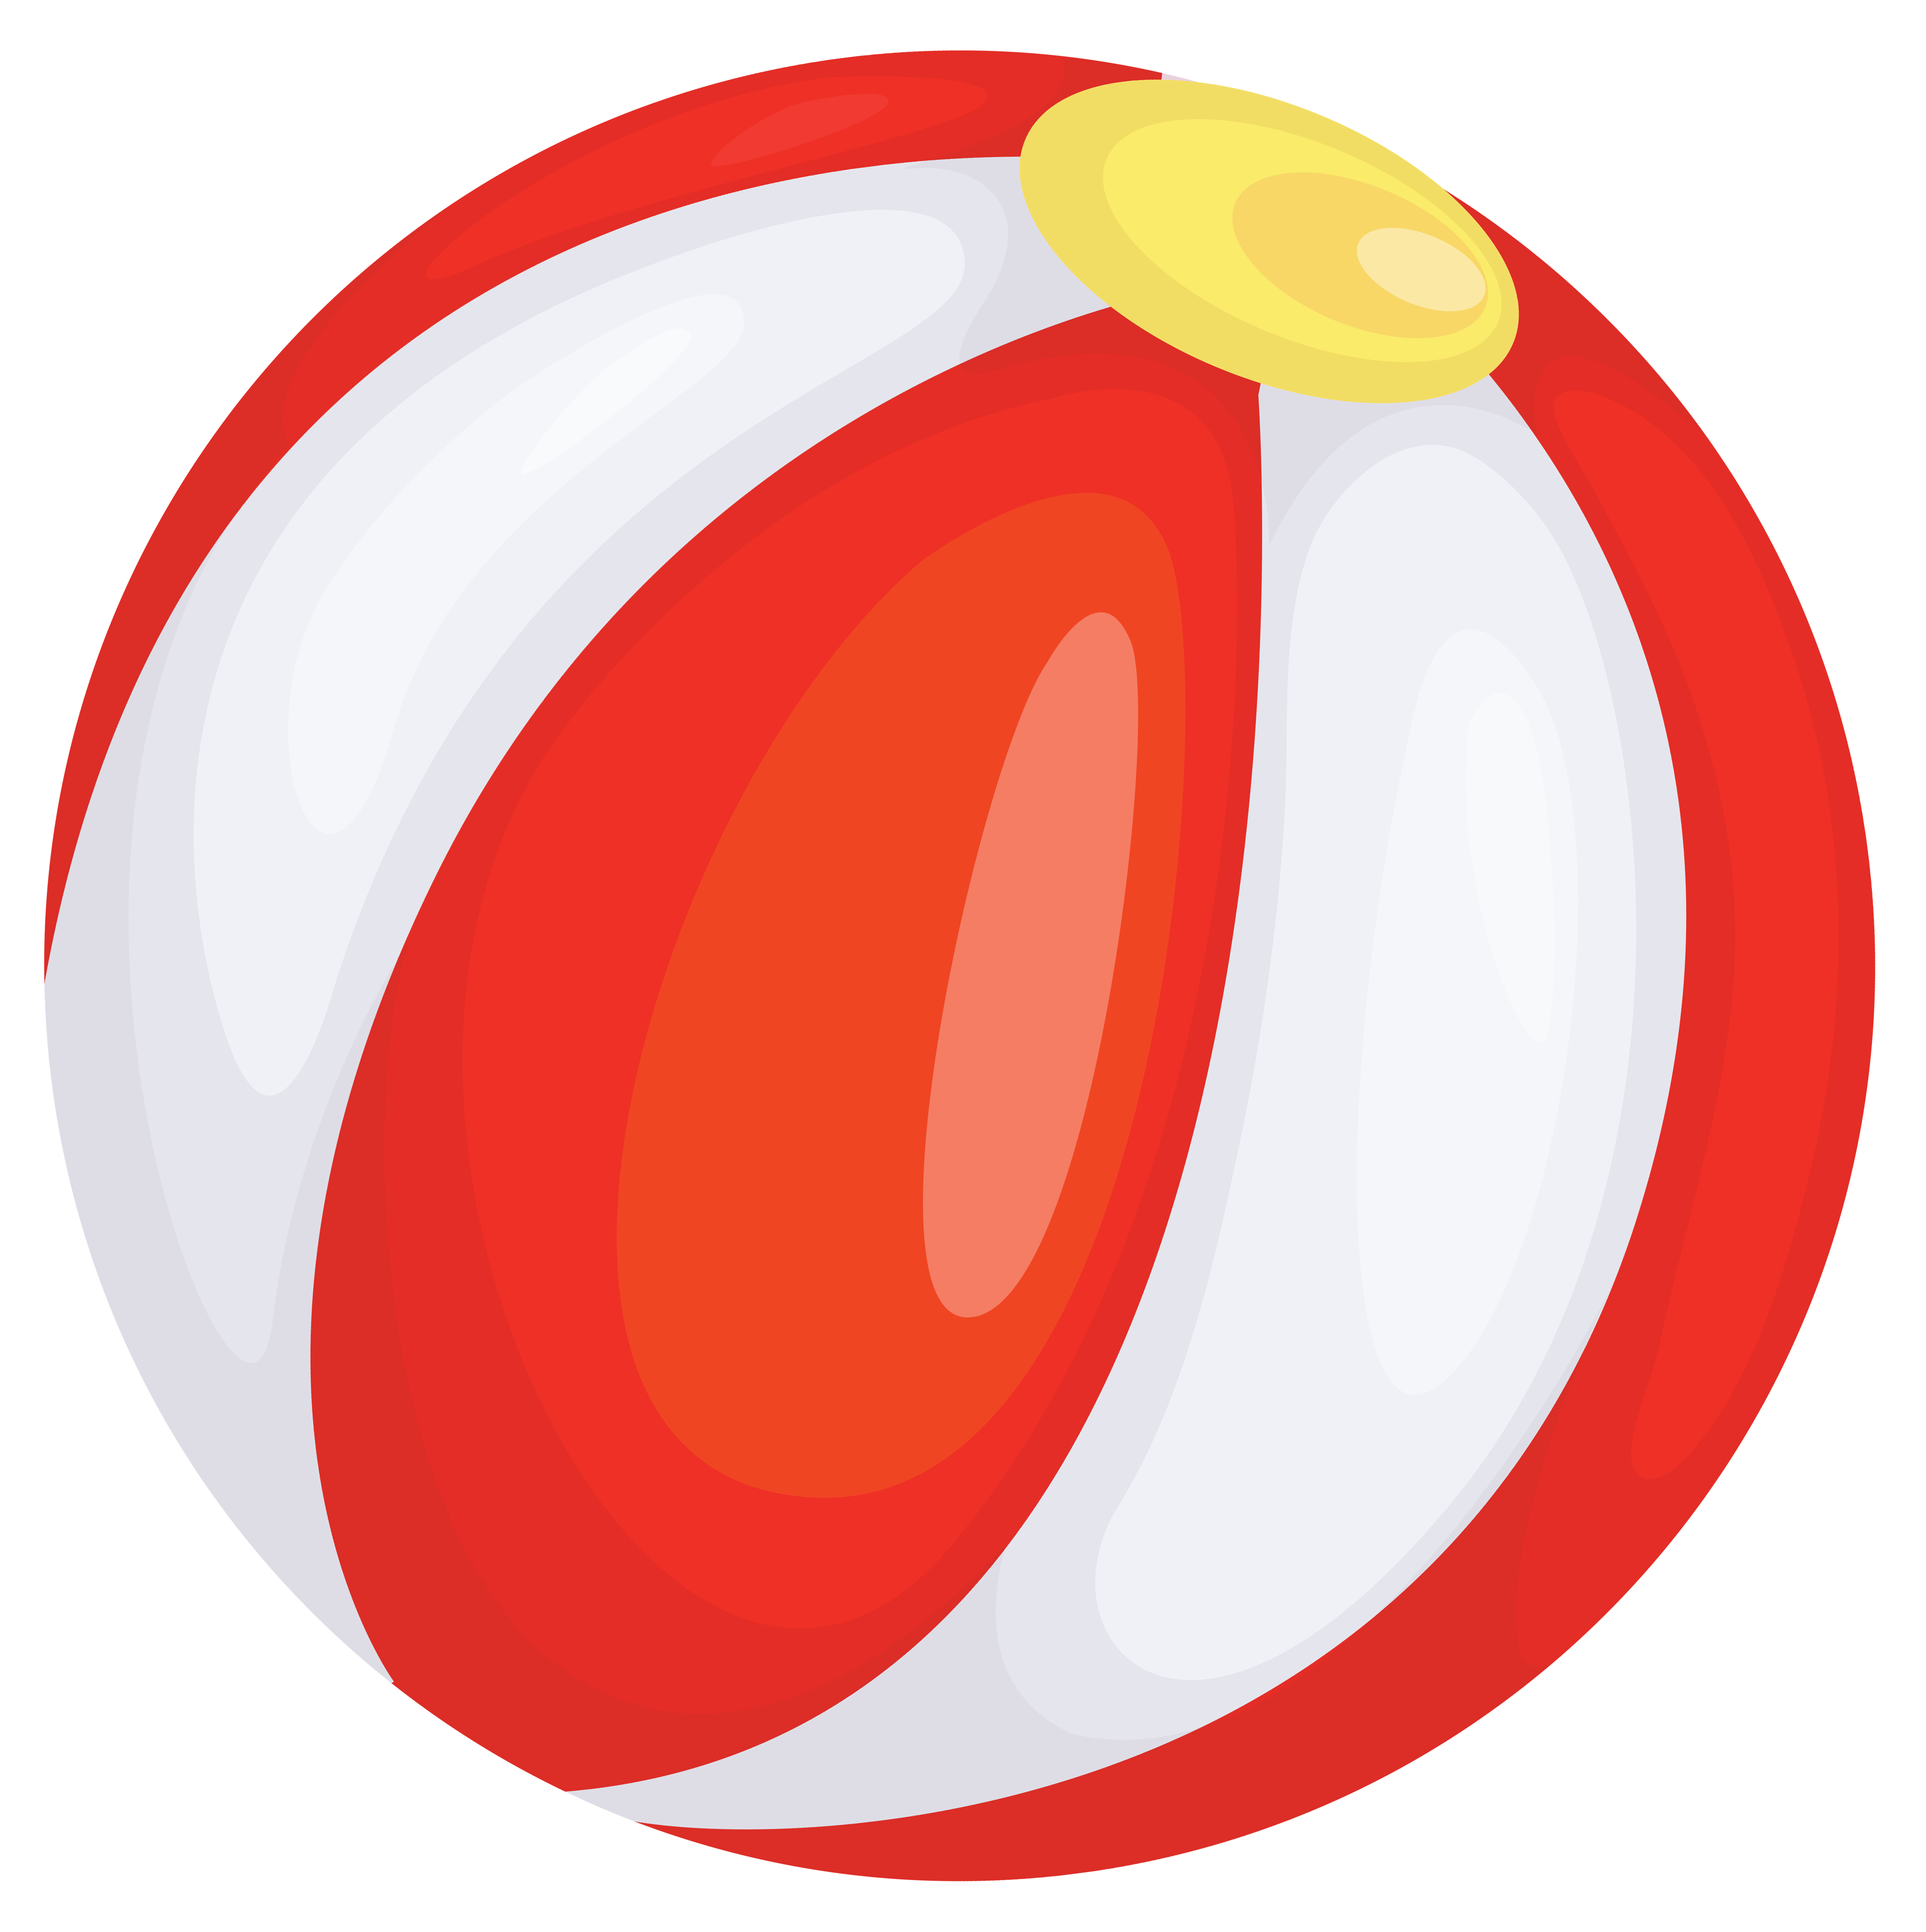 Beach ball clipart png. Gallery yopriceville high quality